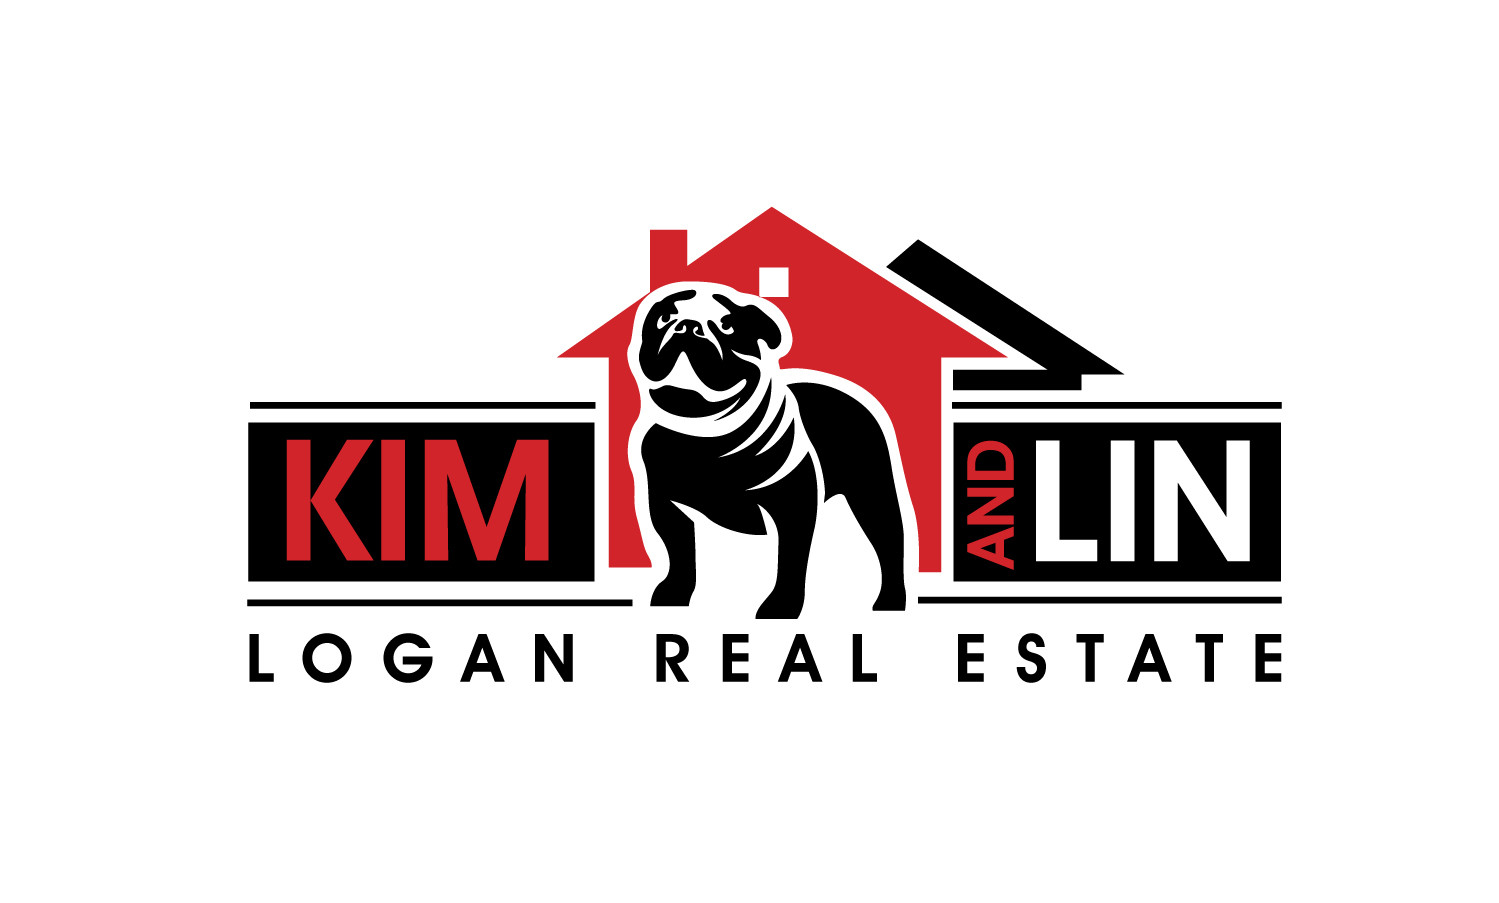 Kim and Lin Logan Real Estate